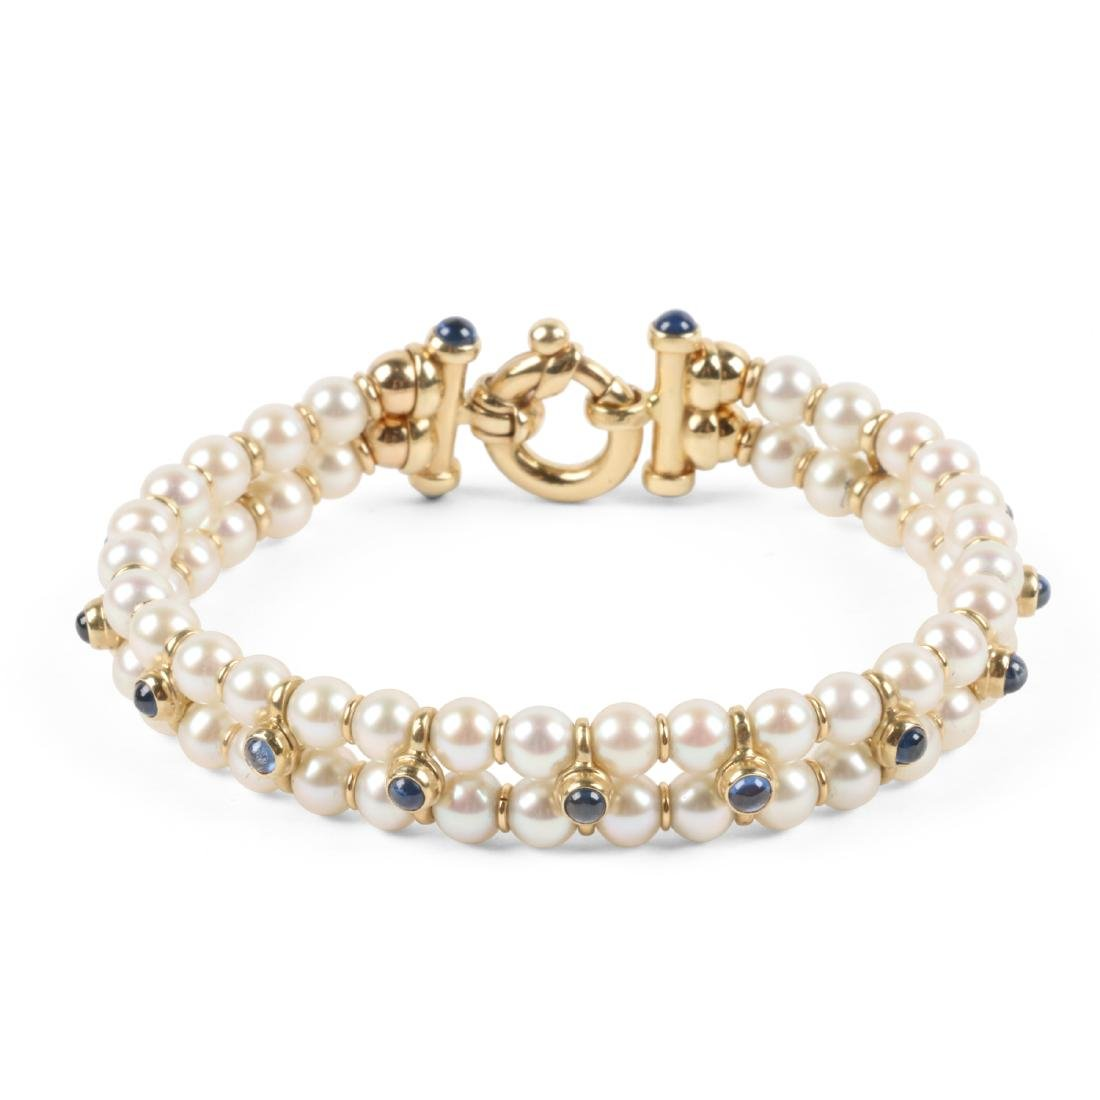 A 14K Yellow Gold, Cultured Pearl, Sapphire Bracelet